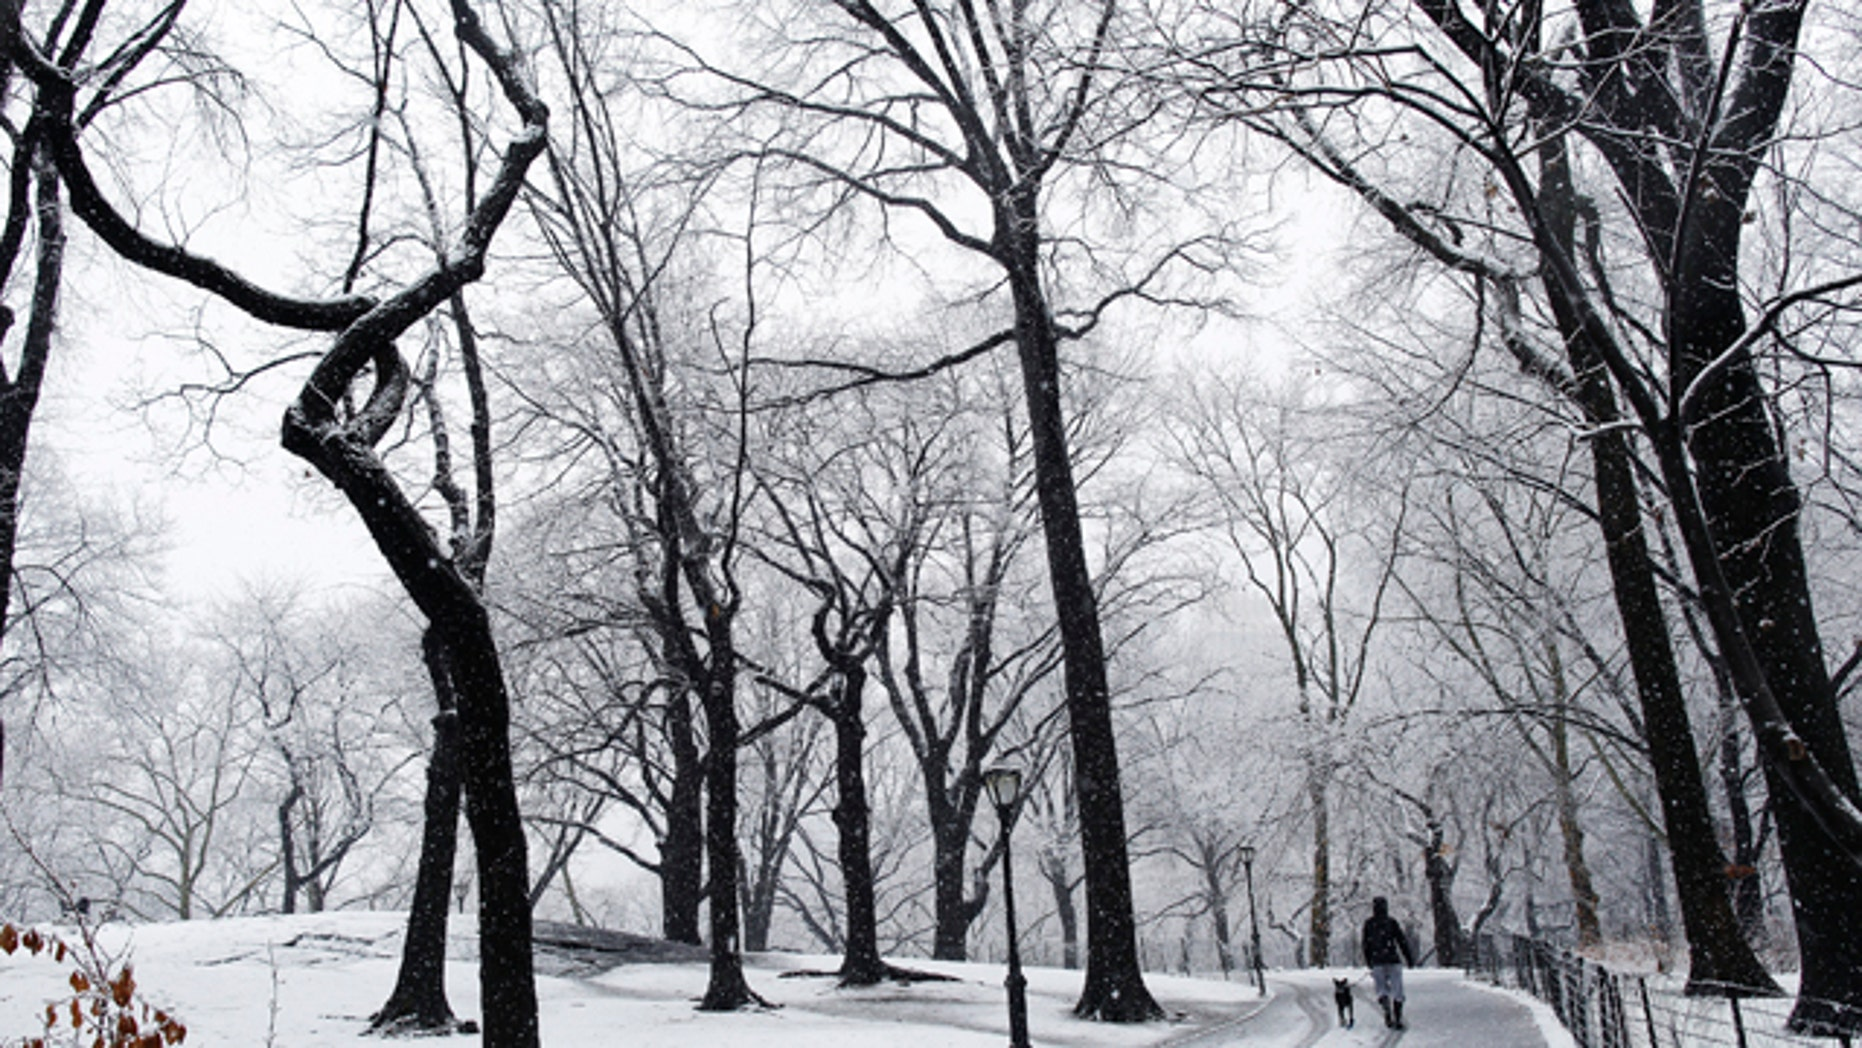 A woman walks her dog during snowfall in the morning at Central Park in New York February 25, 2010.  REUTERS/Shannon Stapleton (UNITED STATES - Tags: SOCIETY ENVIRONMENT)